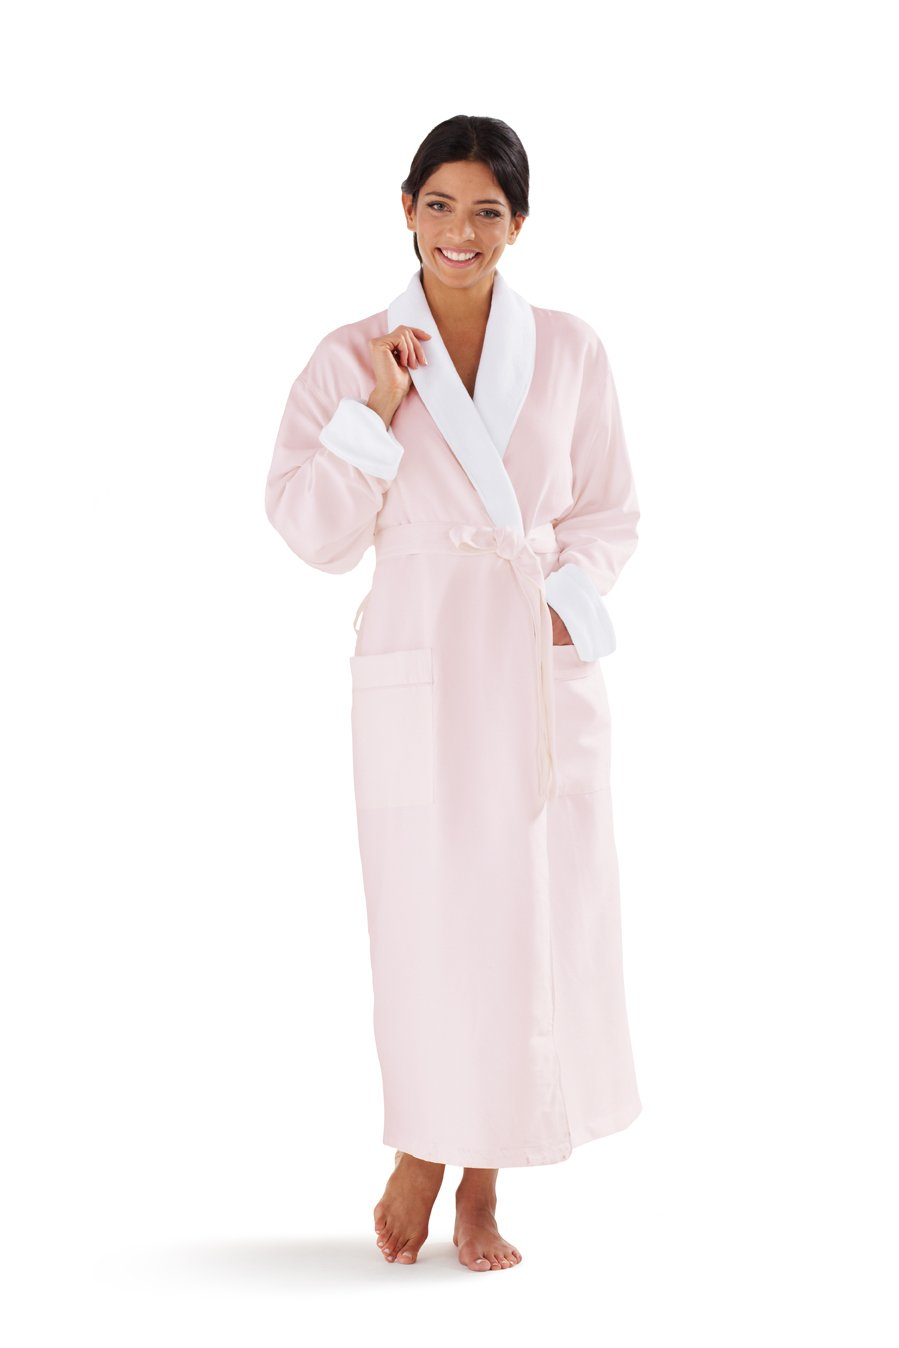 Boca Terry Women's Robe, Luxury Microfiber Pink Bathrobe, One Size Fits All